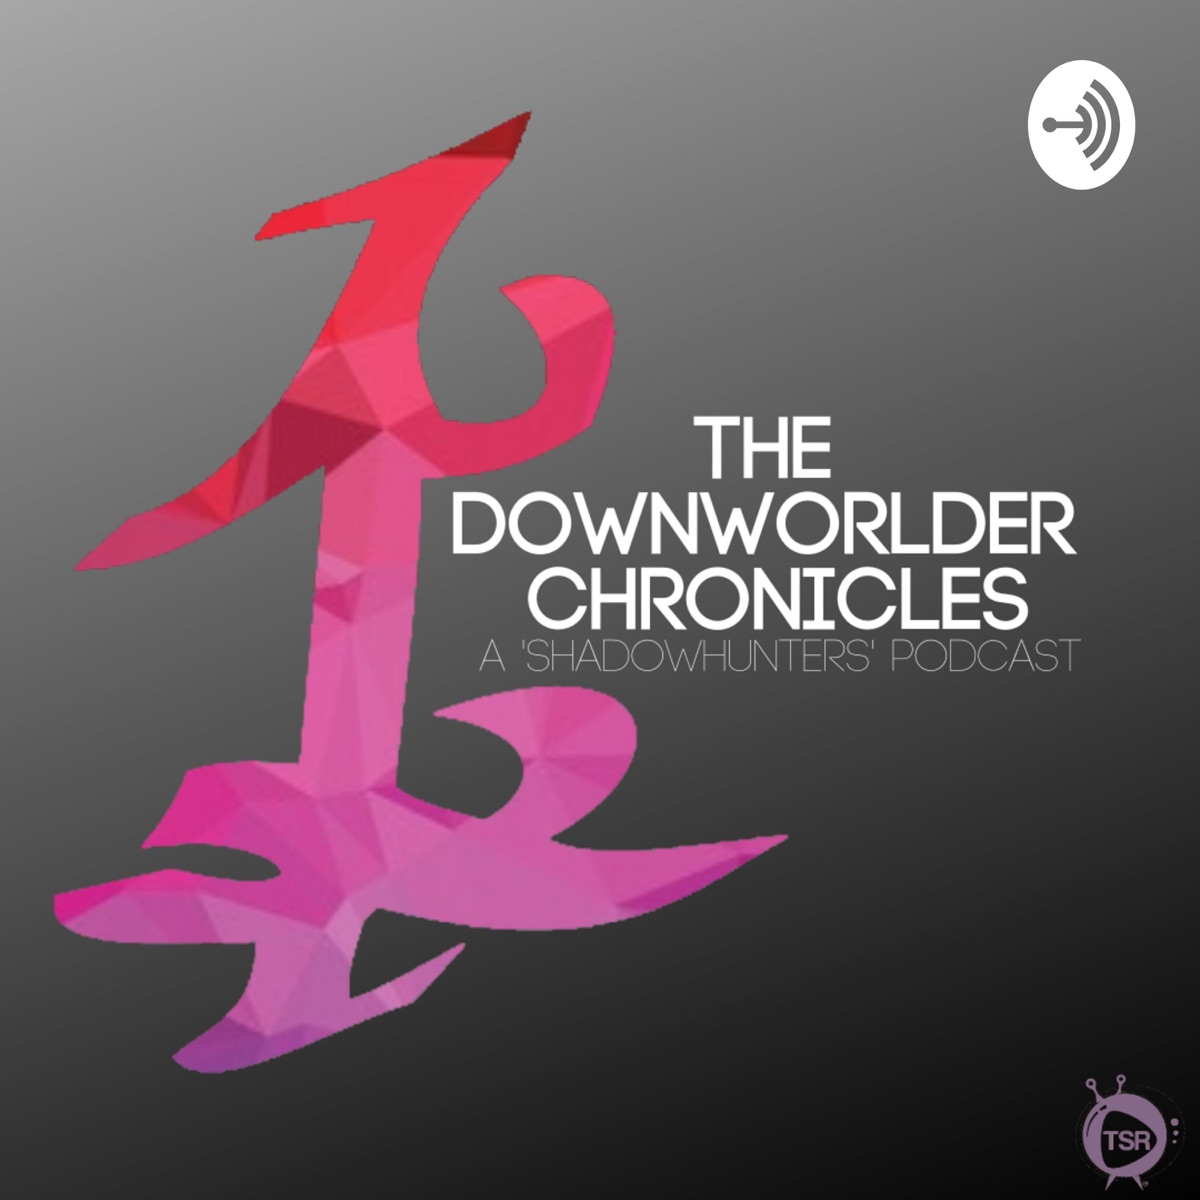 The Downworlder Chronicles: A 'Shadowhunters' Podcast